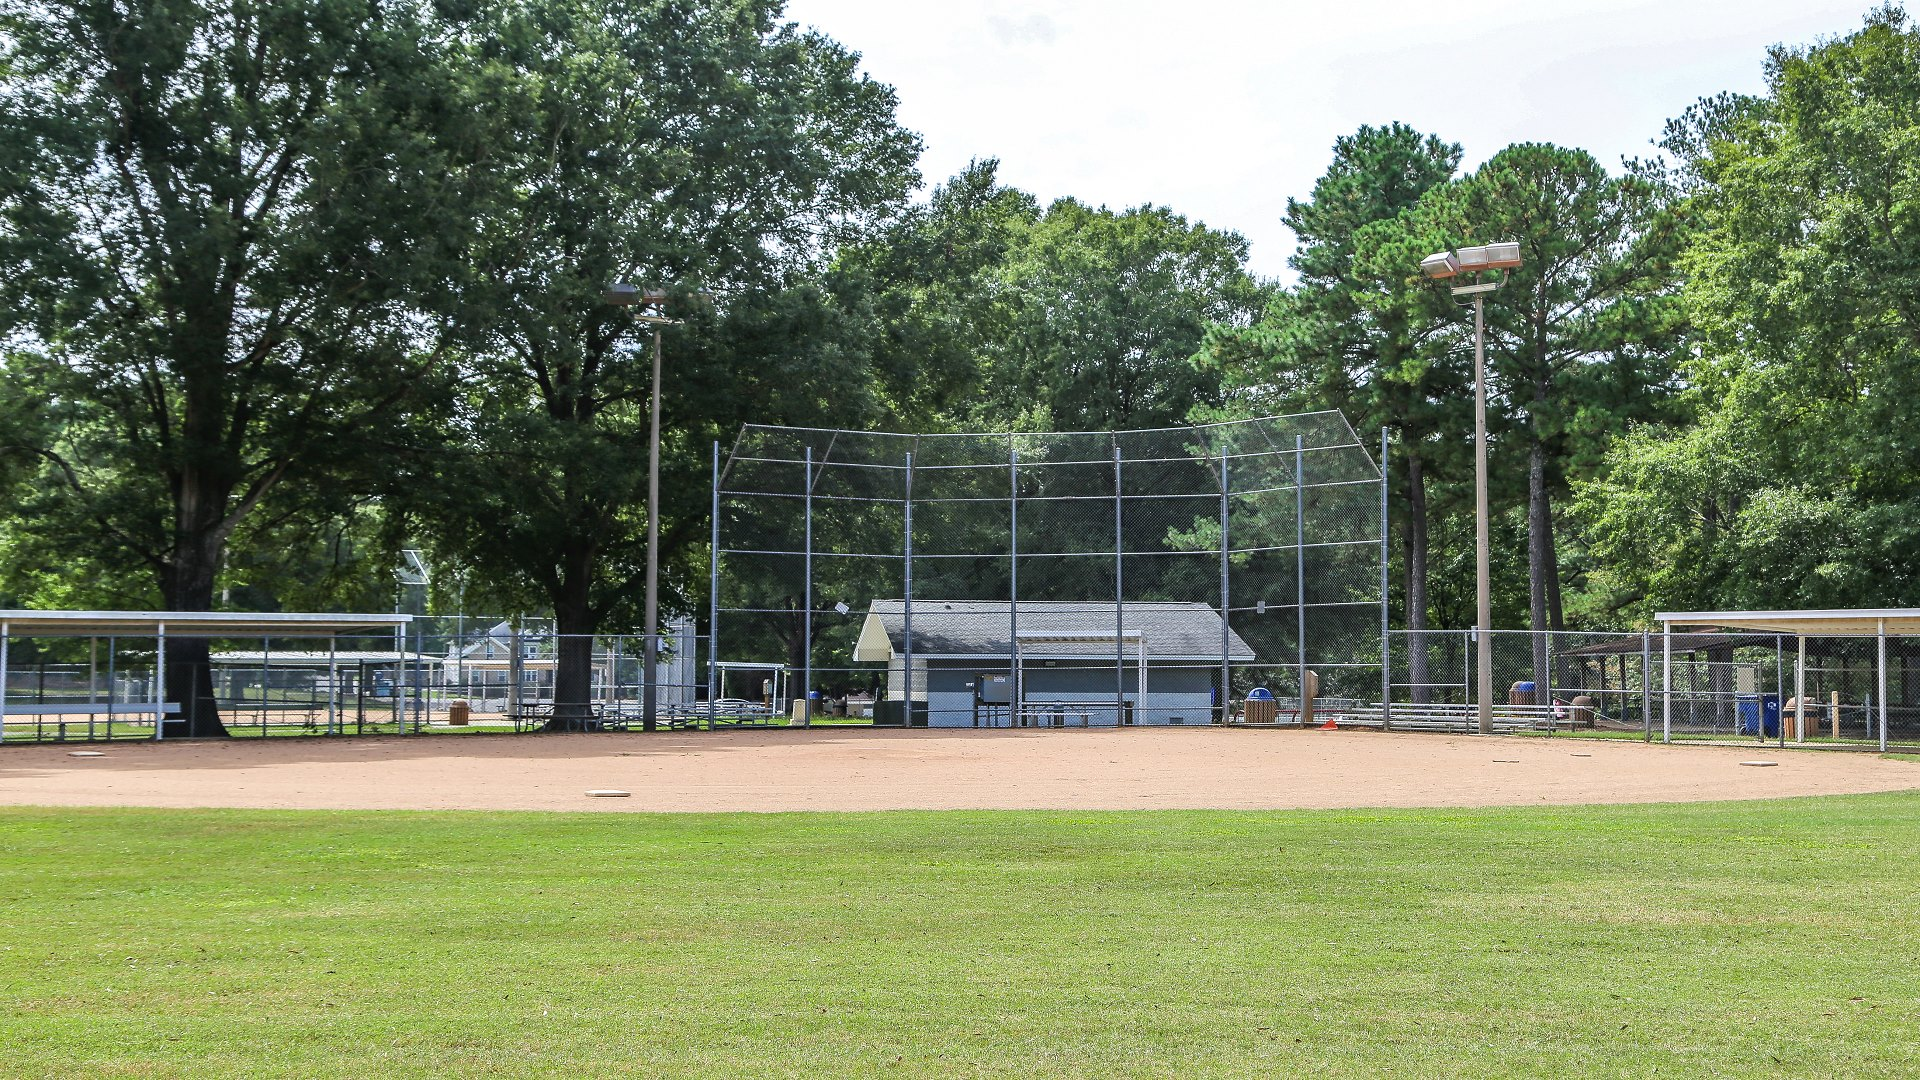 Shot of the youth baseball field and diamond at Biltmore Hills Park